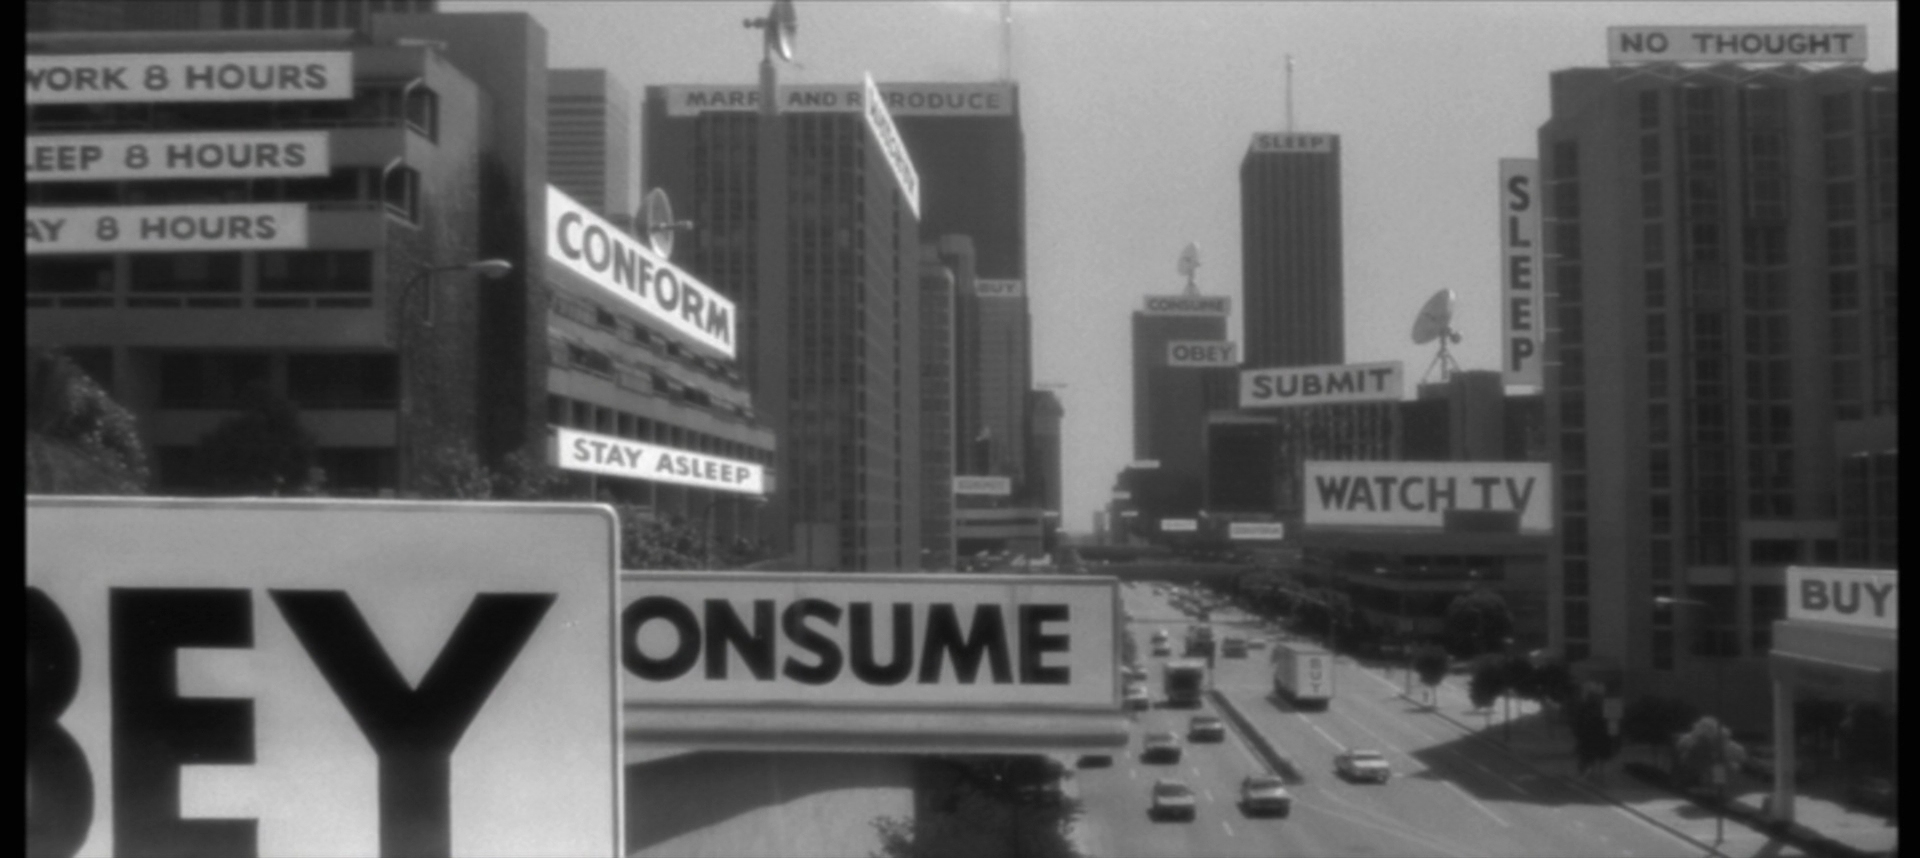 The view through the sunglasses in They Live—A political form of Augmented Reality revealing the true ideological basis of capitalism and its advertising.